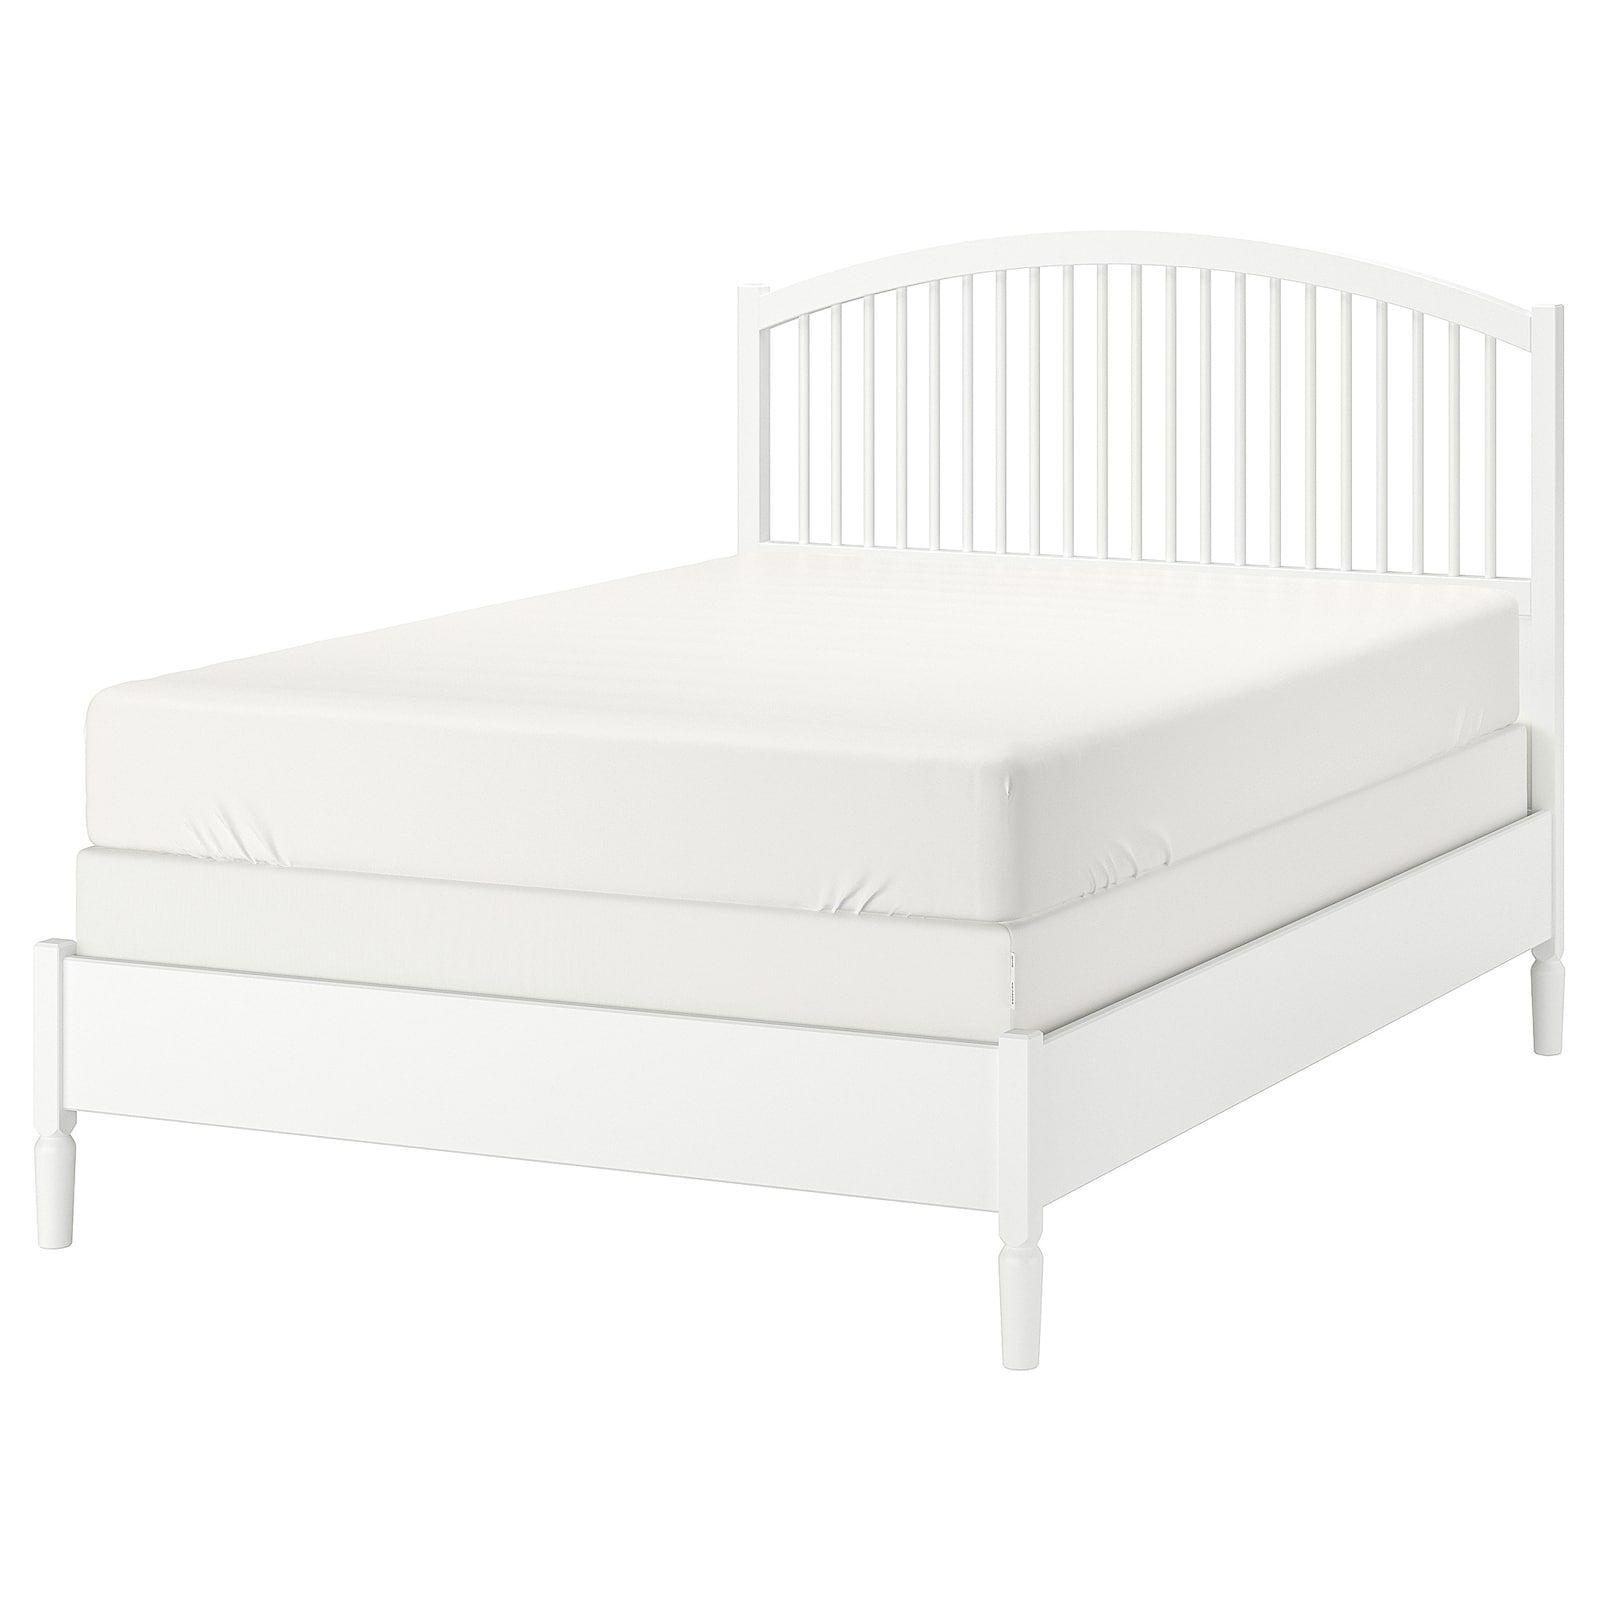 Tyssedal Bed Frame White Eidfjord Queen Ikea In 2020 Bed